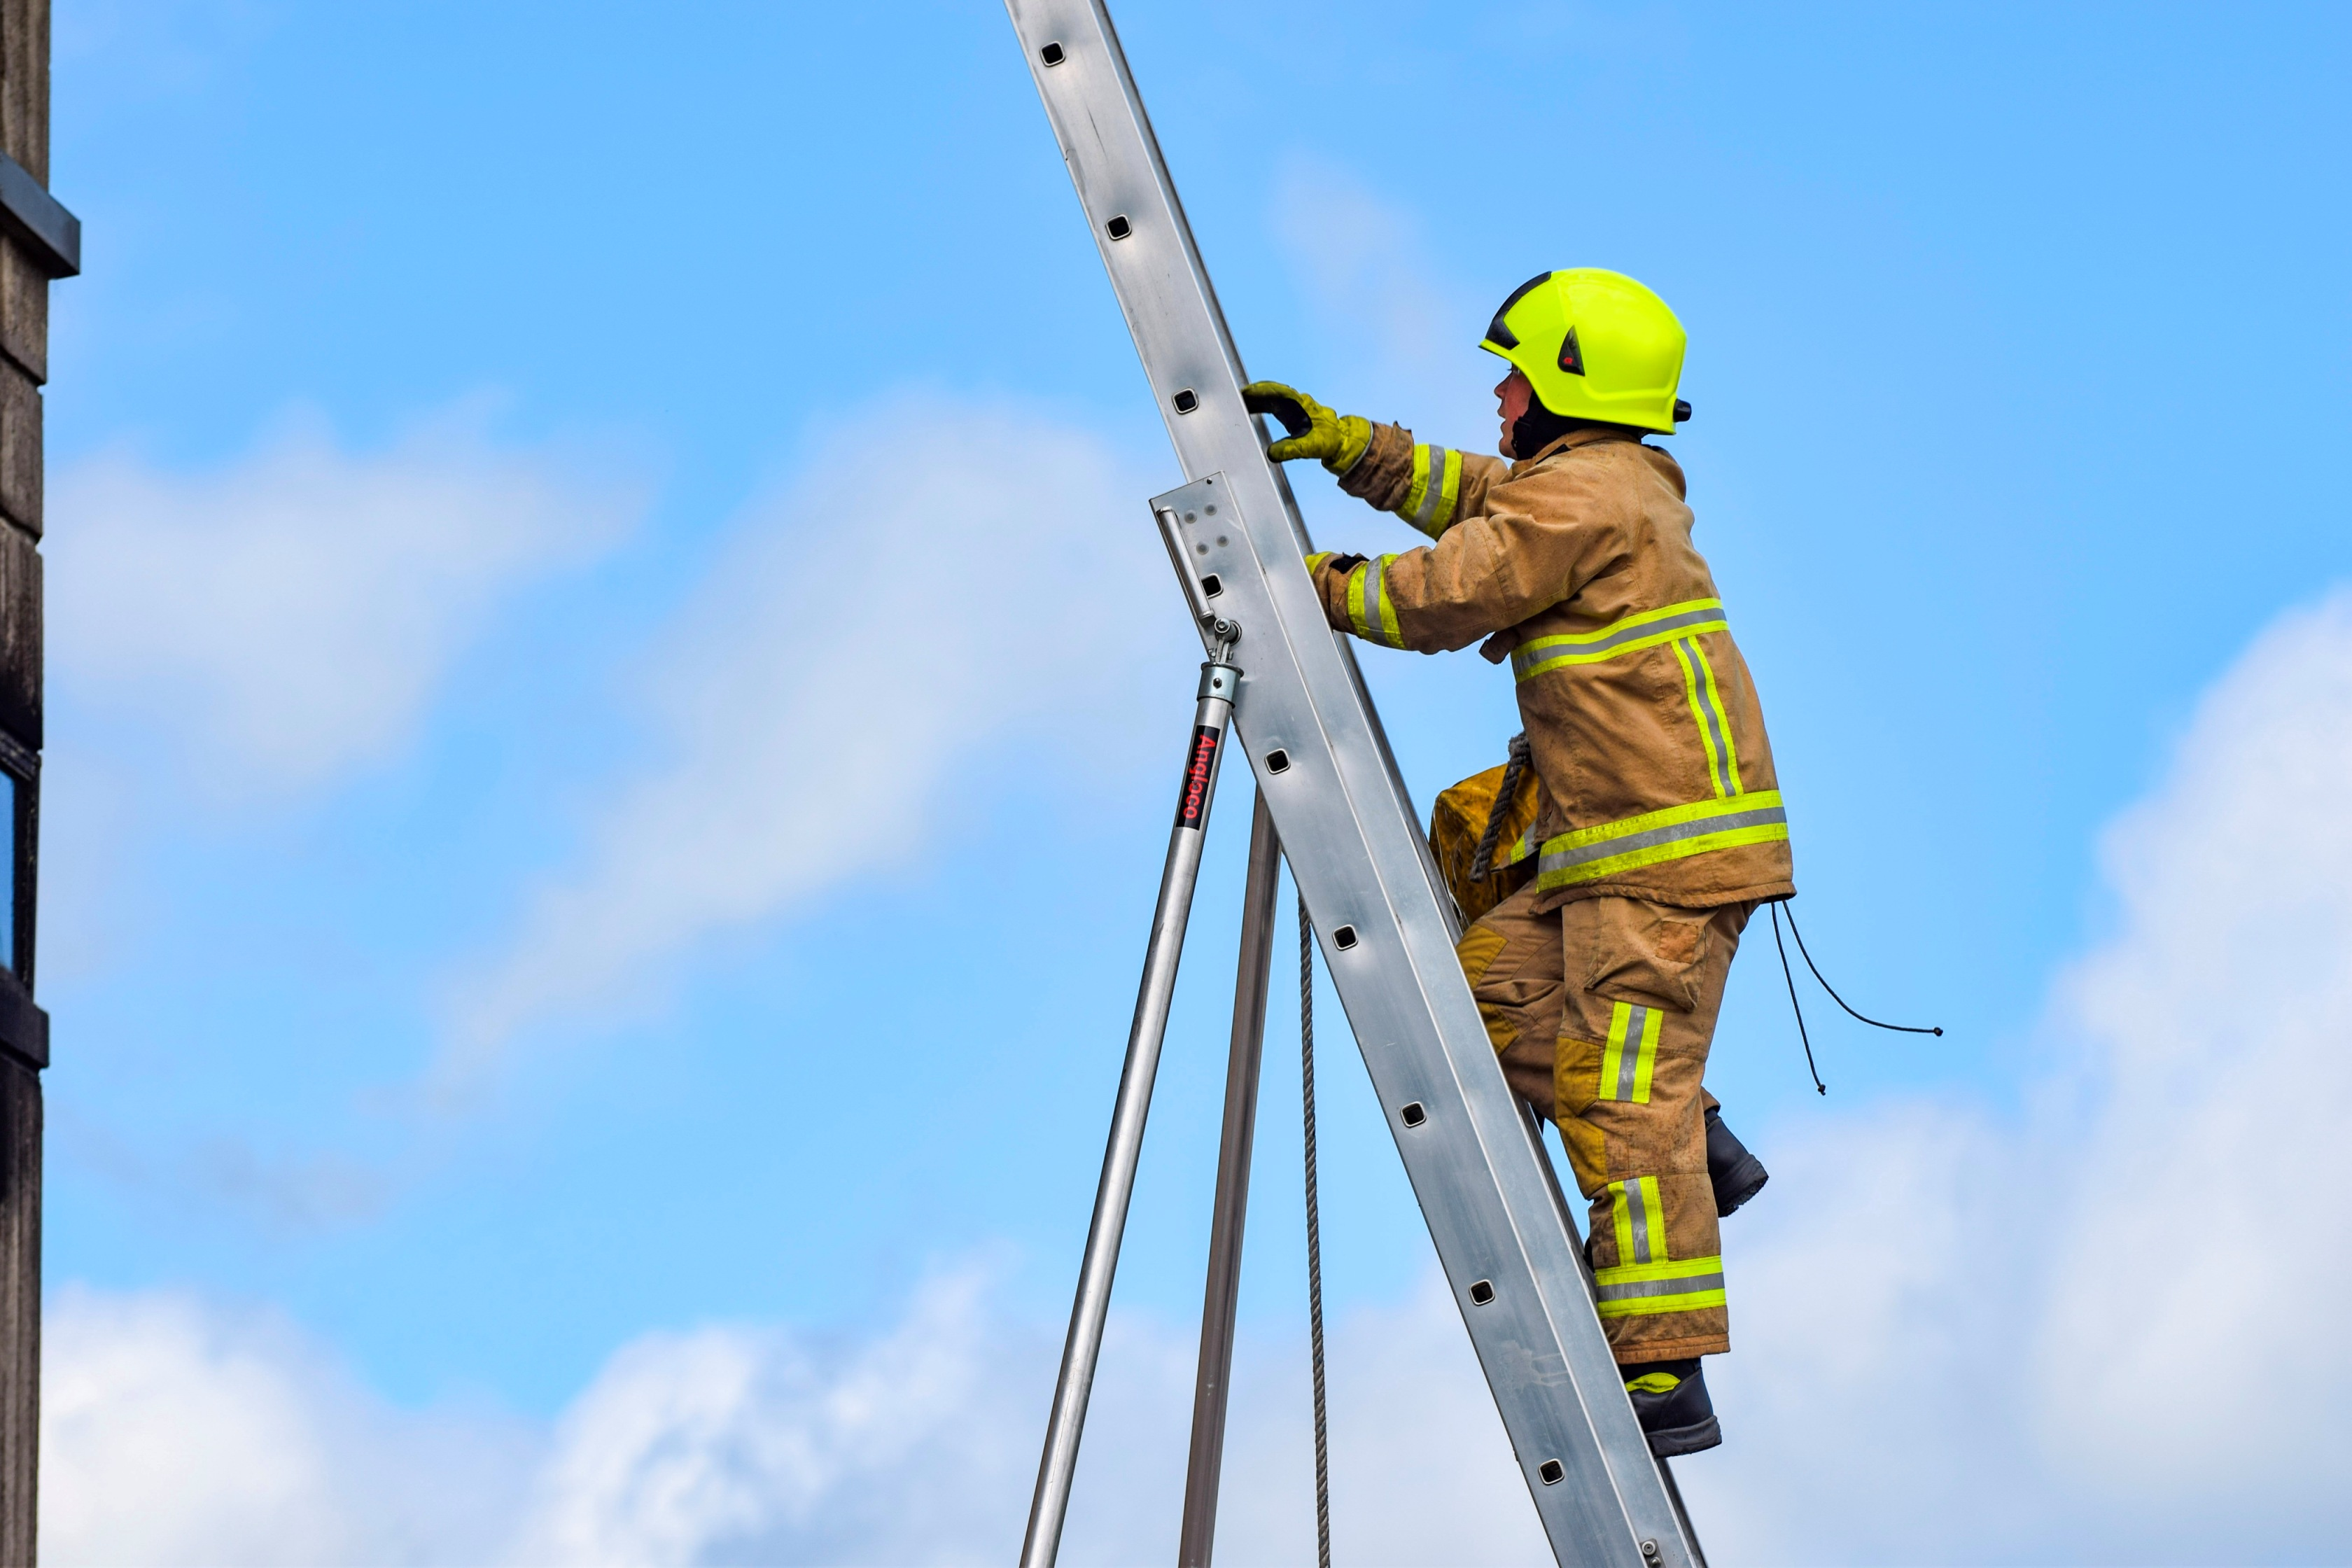 Firefighter Apprenticeships